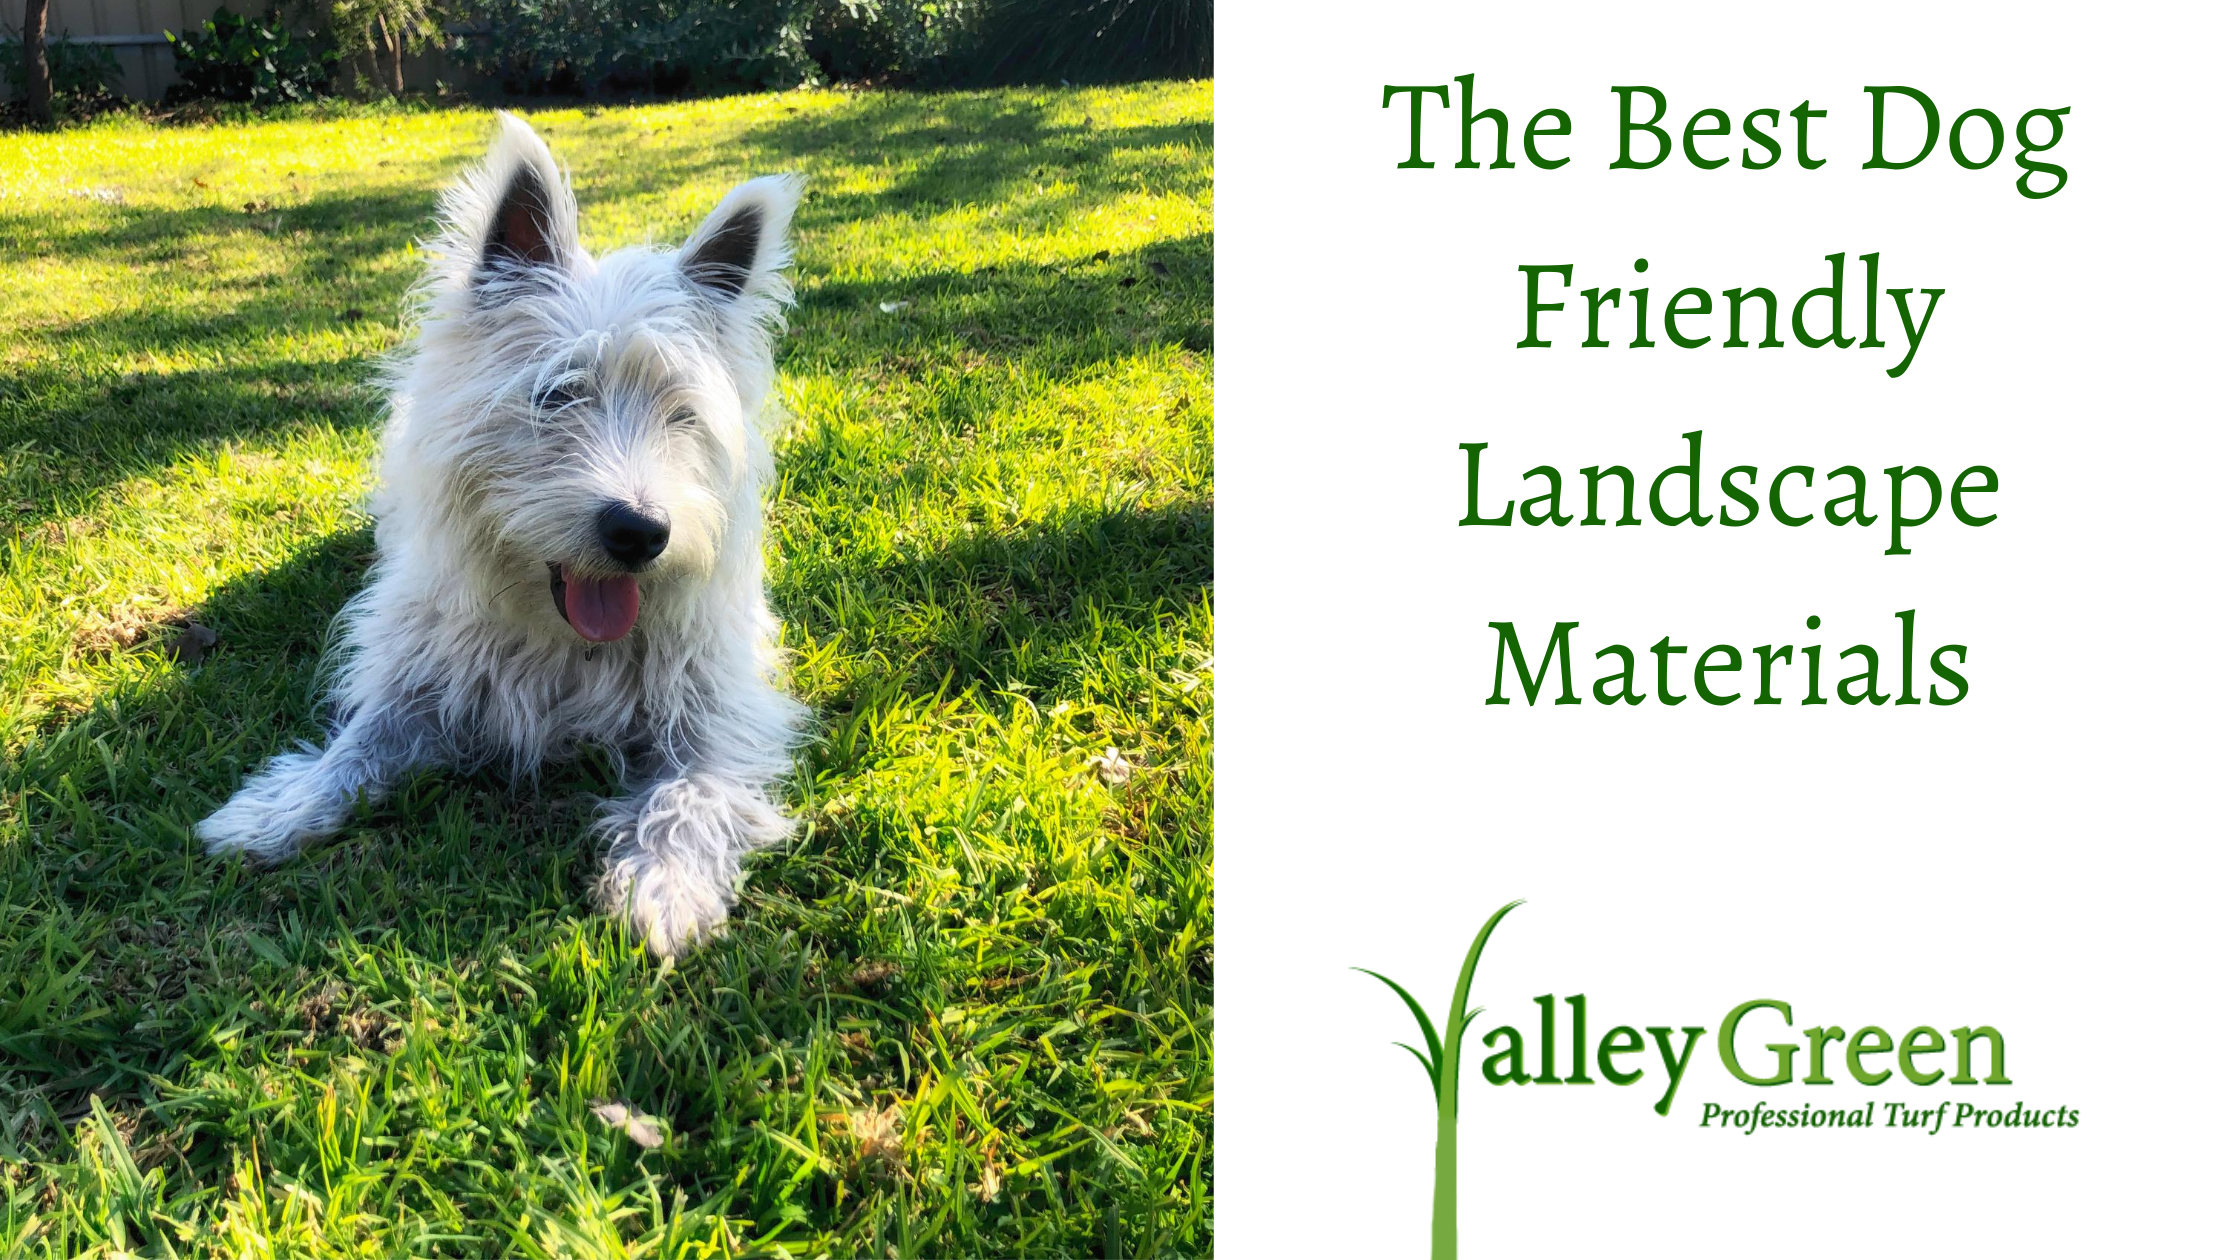 The Best Dog Friendly Landscape Materials